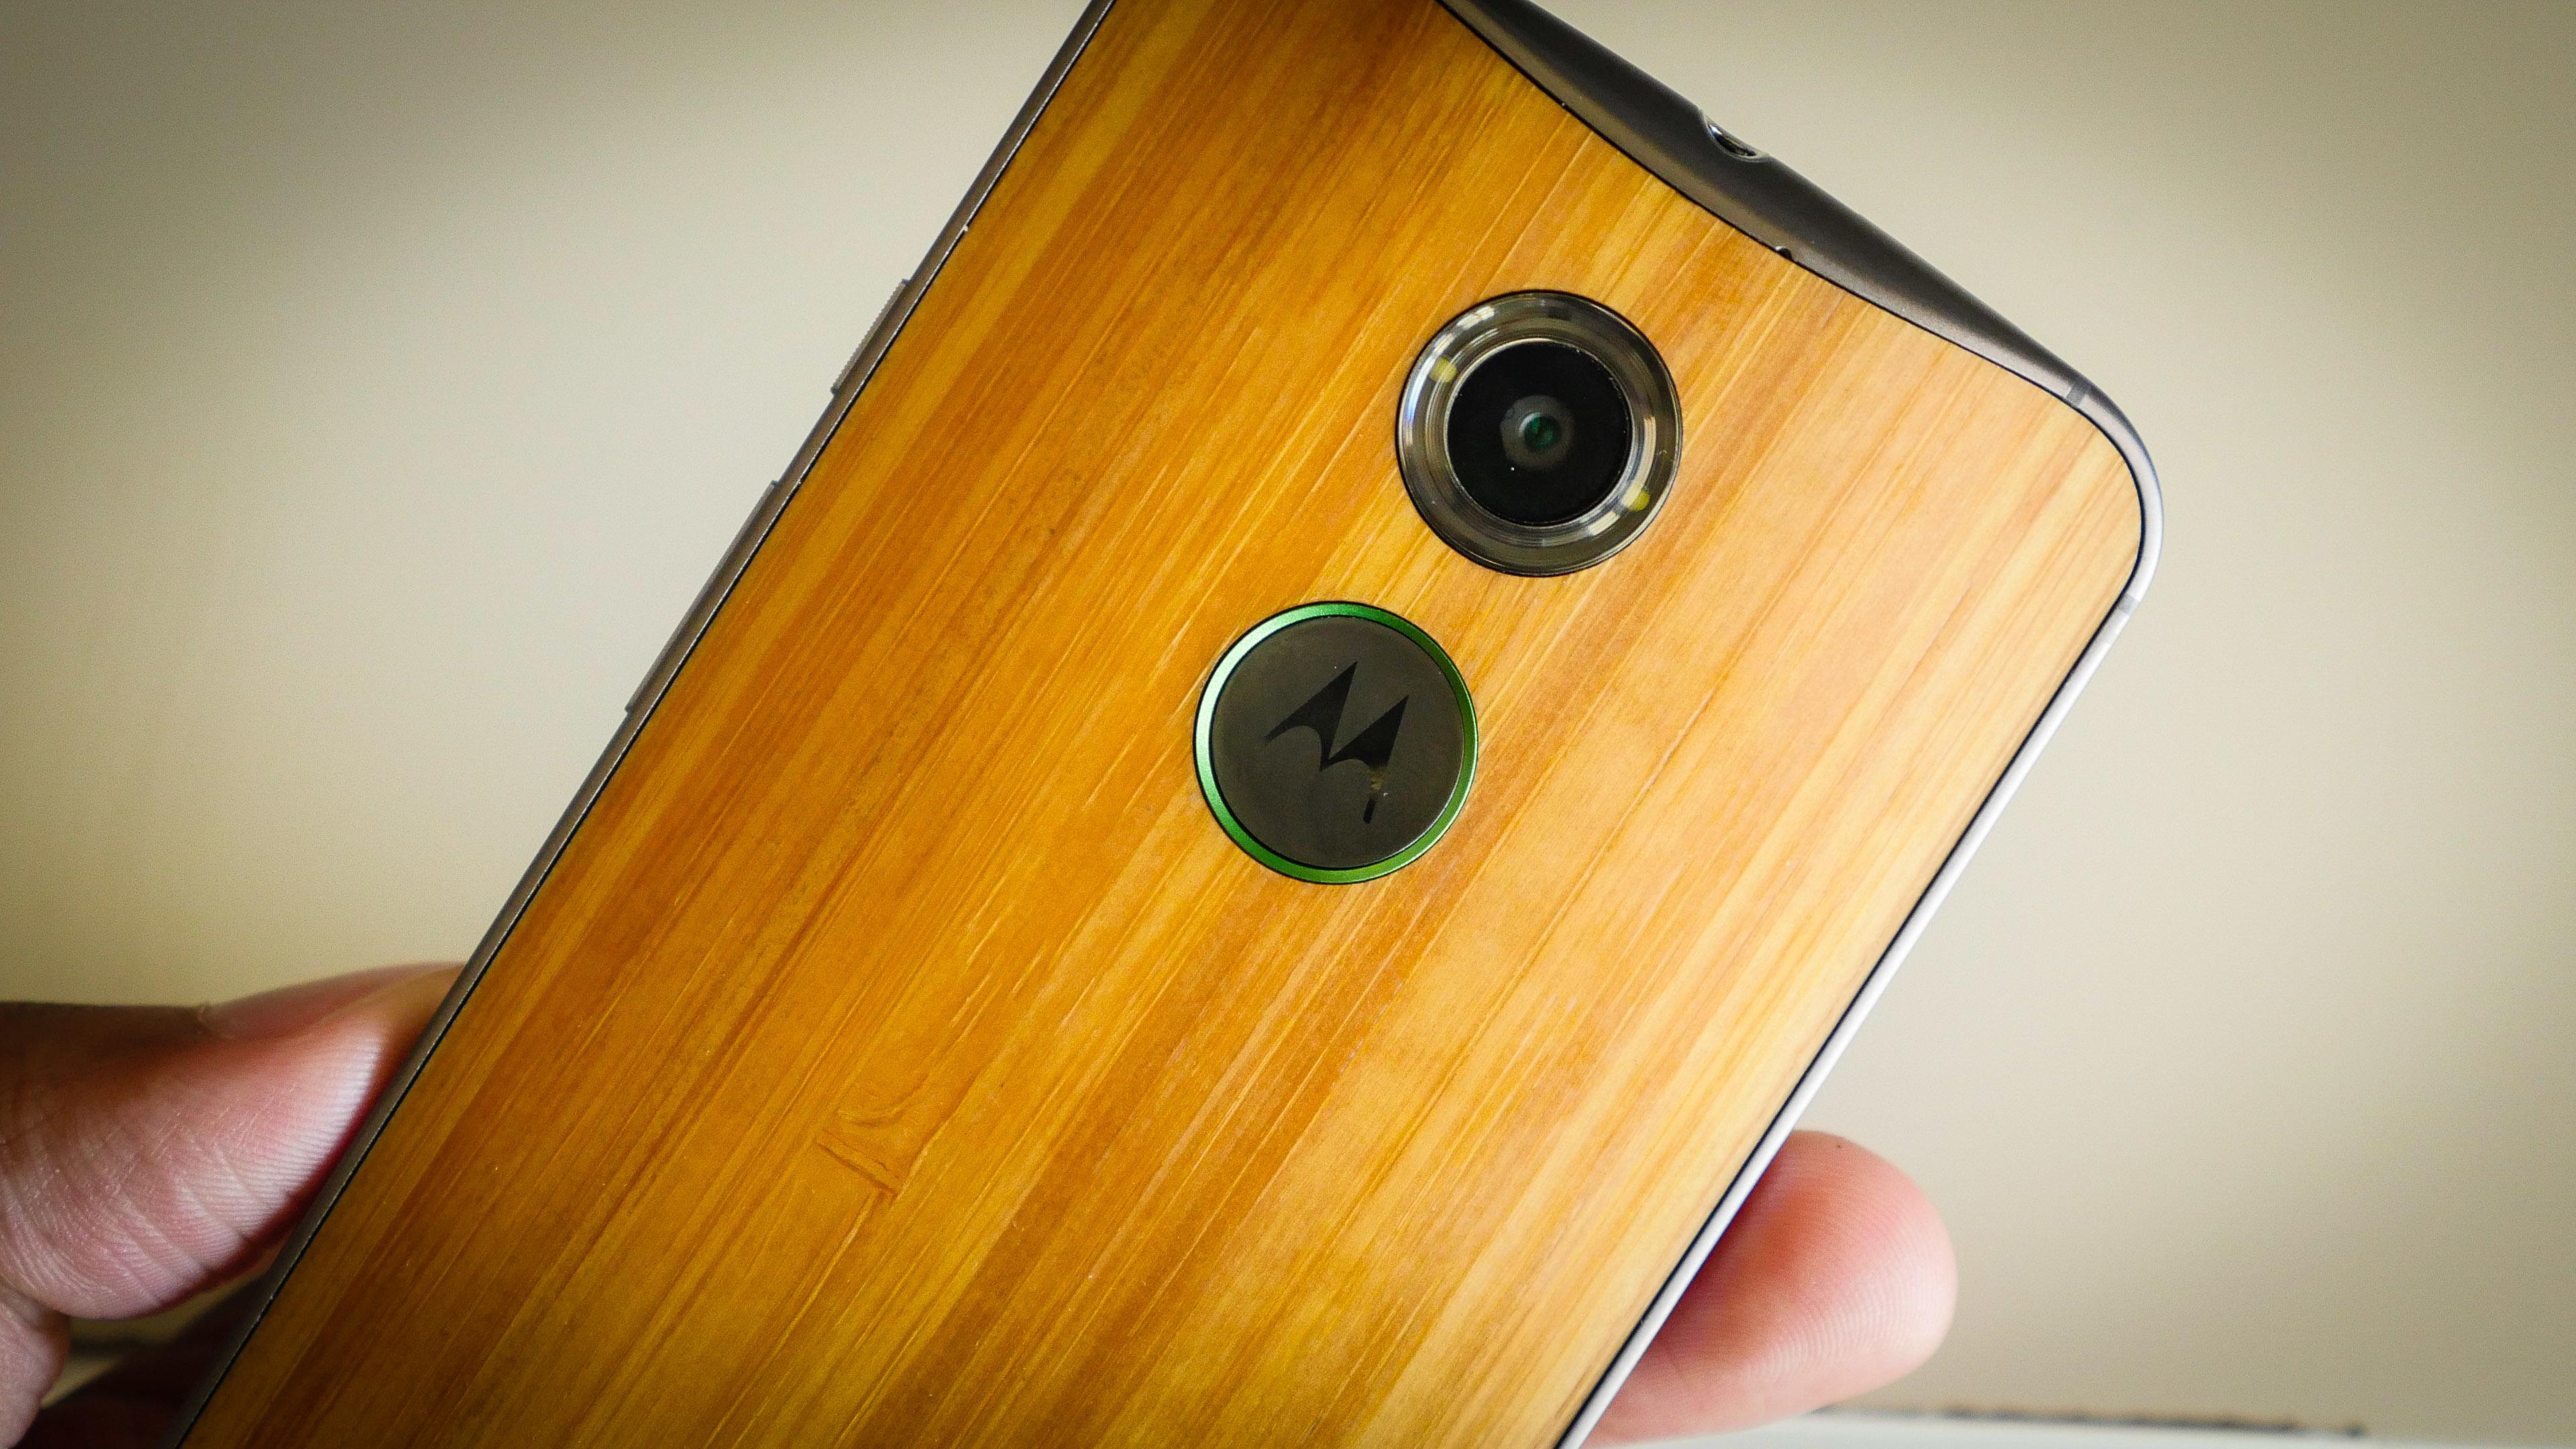 moto x 2014 first impressions (8 of 18)